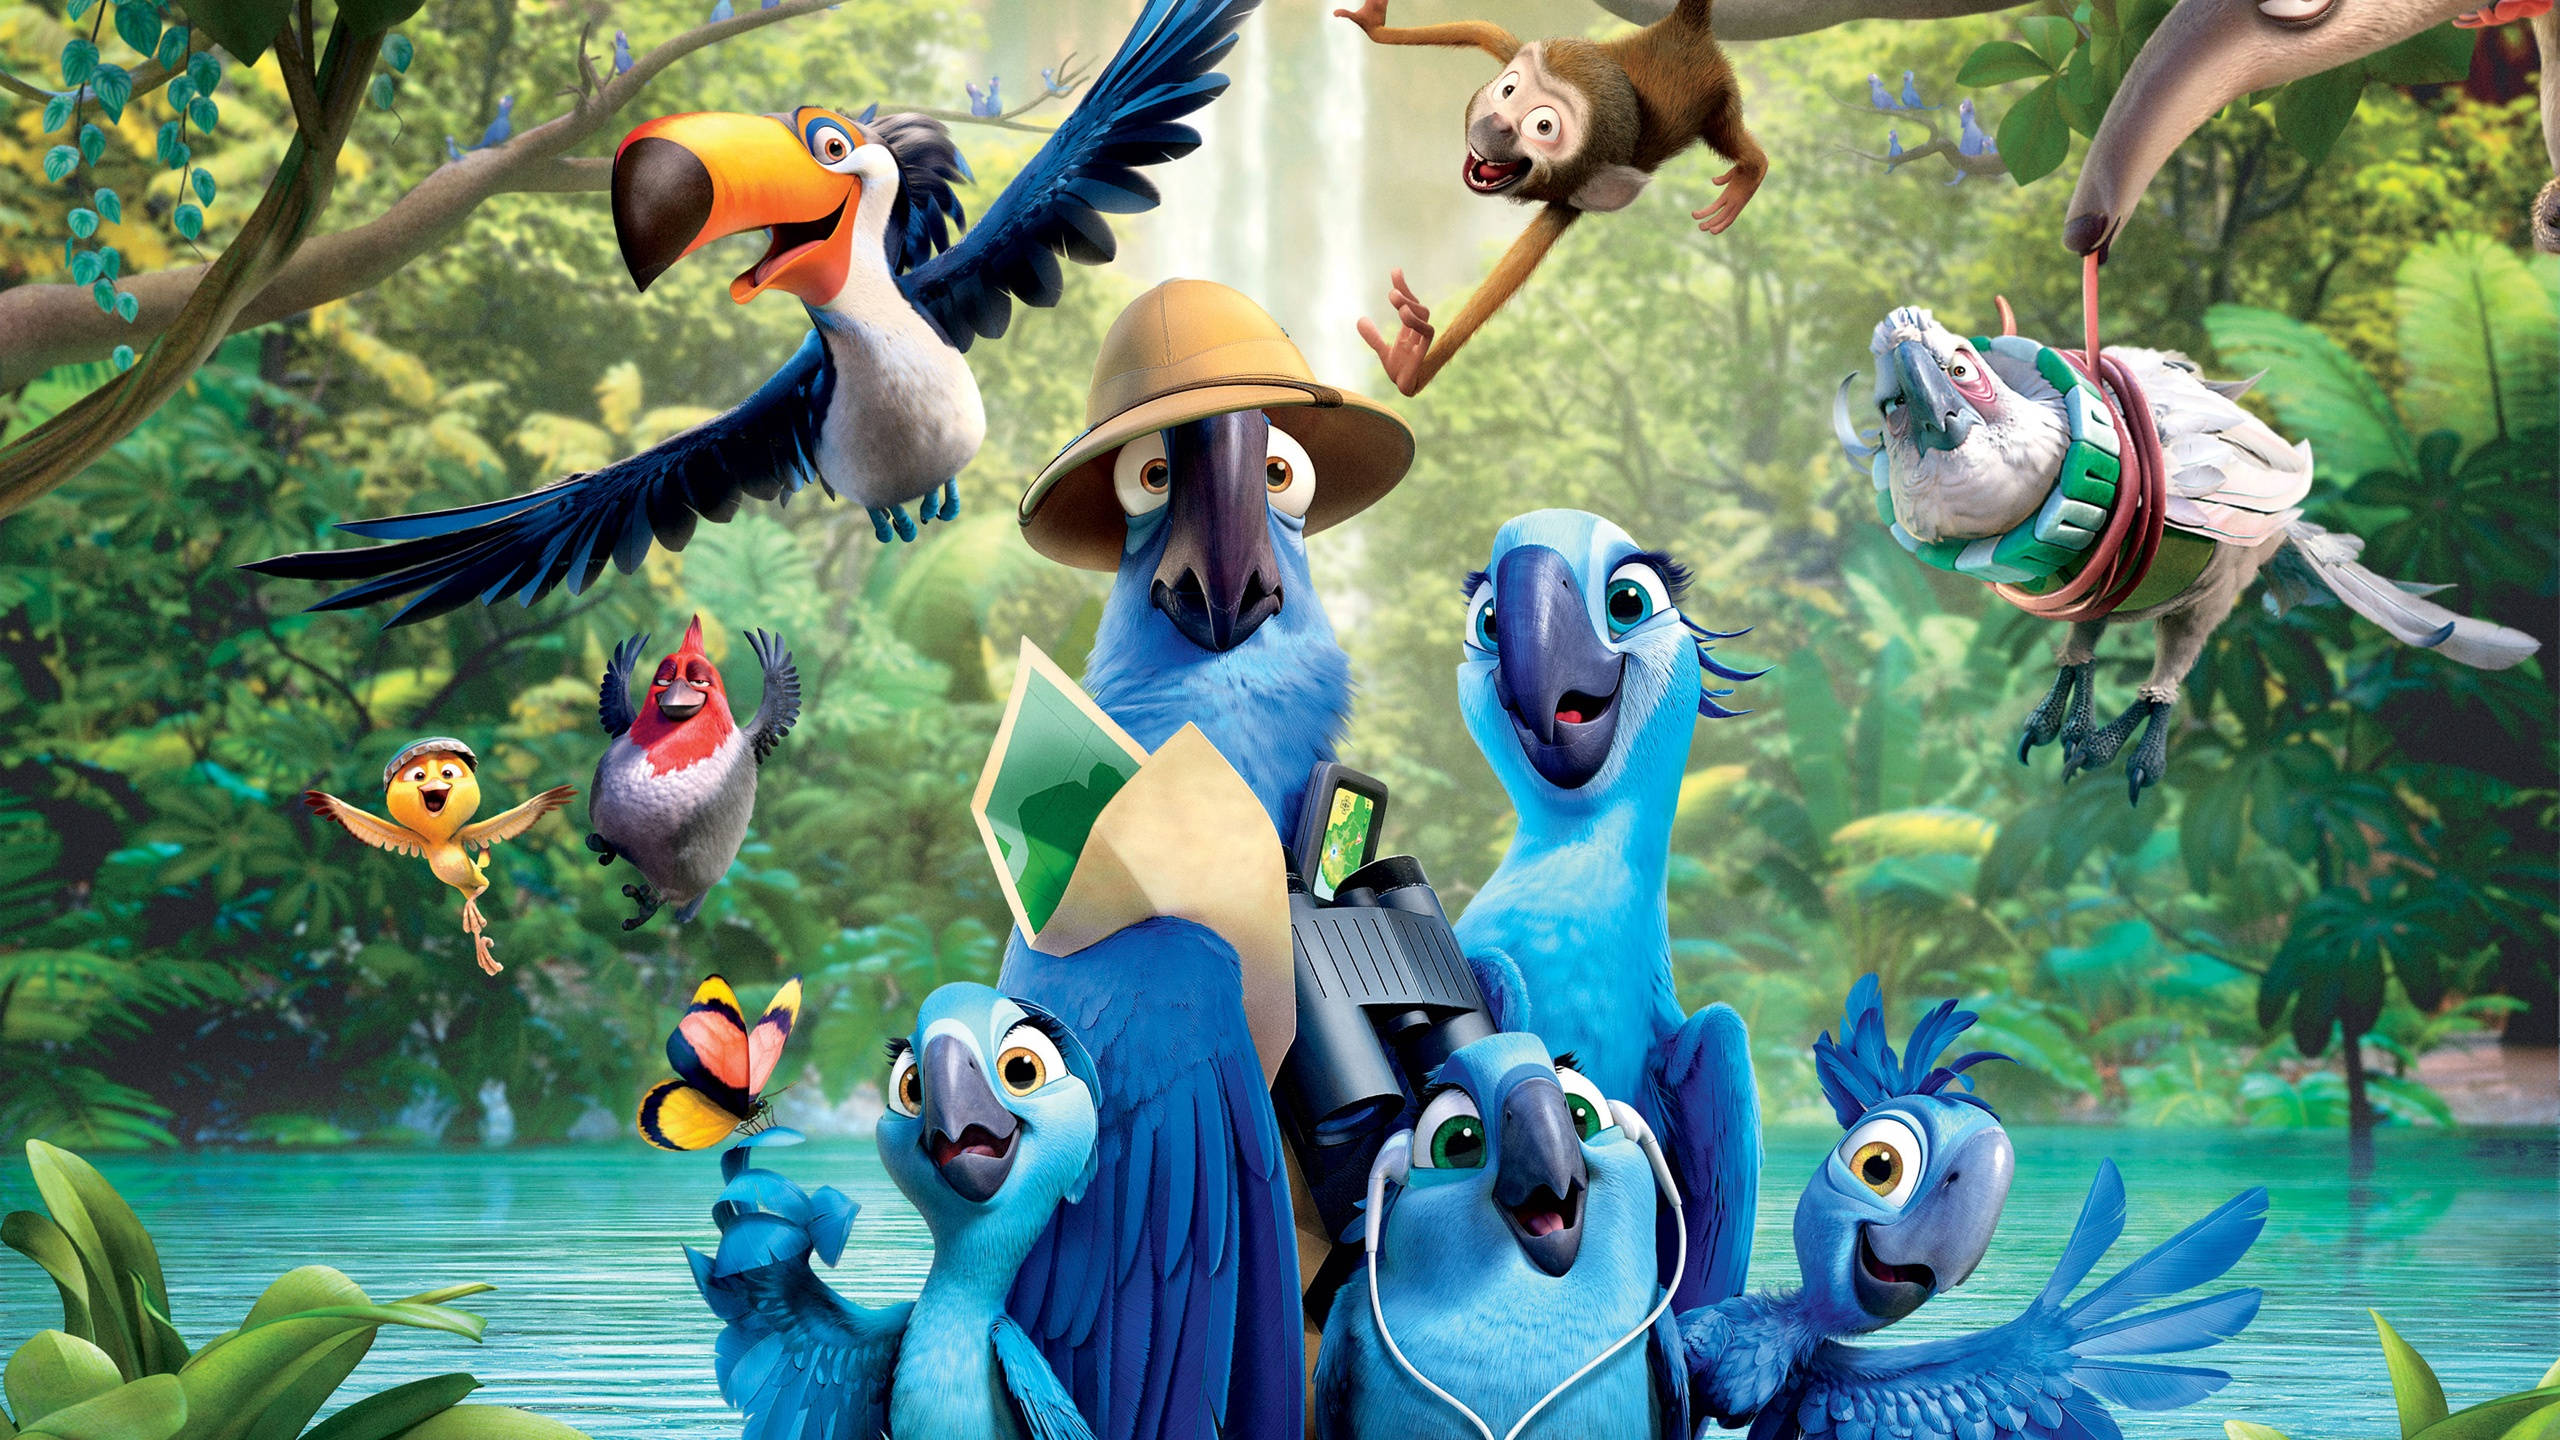 rio 2 movie wallpapers in jpg format for free download